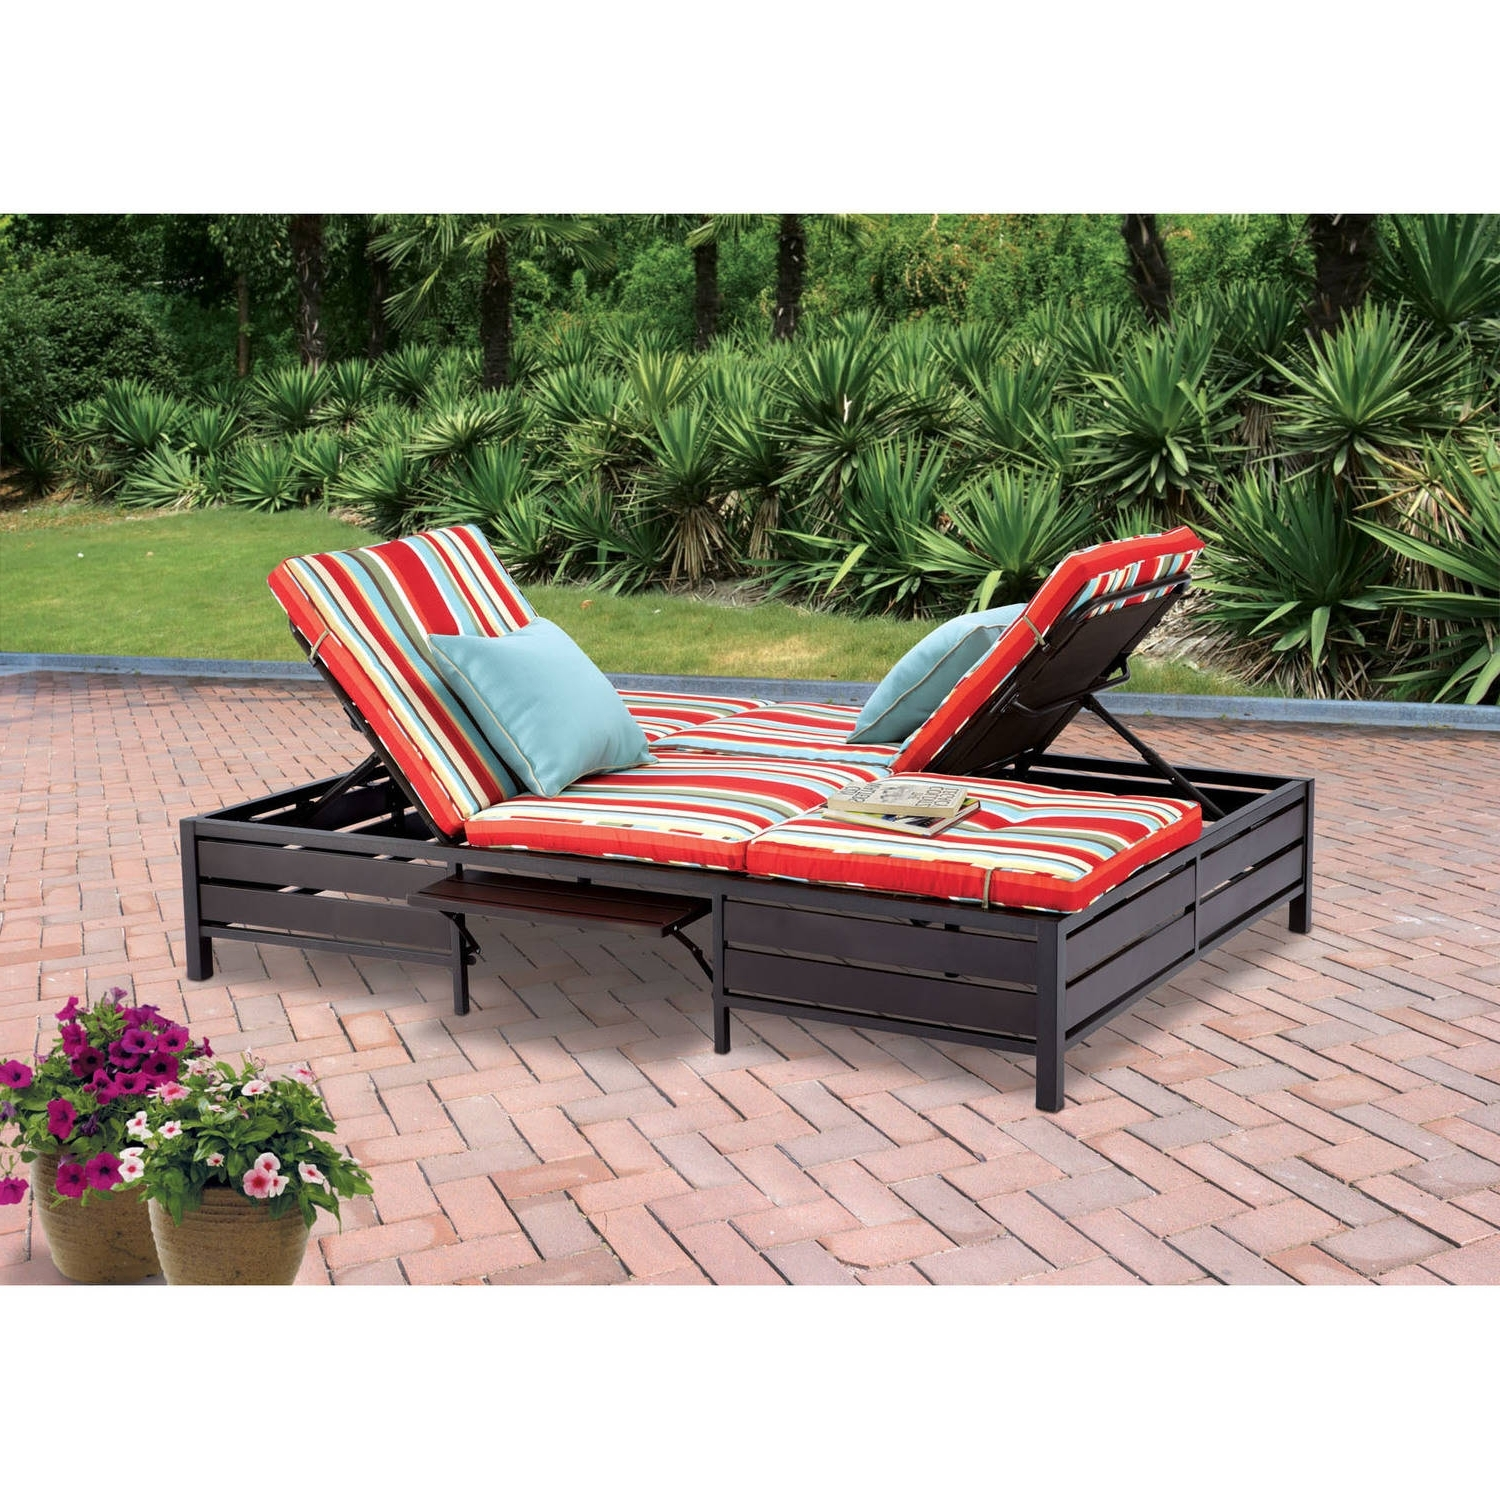 Mainstays Outdoor Double Chaise Lounger, Stripe, Seats 2 – Walmart In Favorite Walmart Chaise Lounges (View 6 of 15)